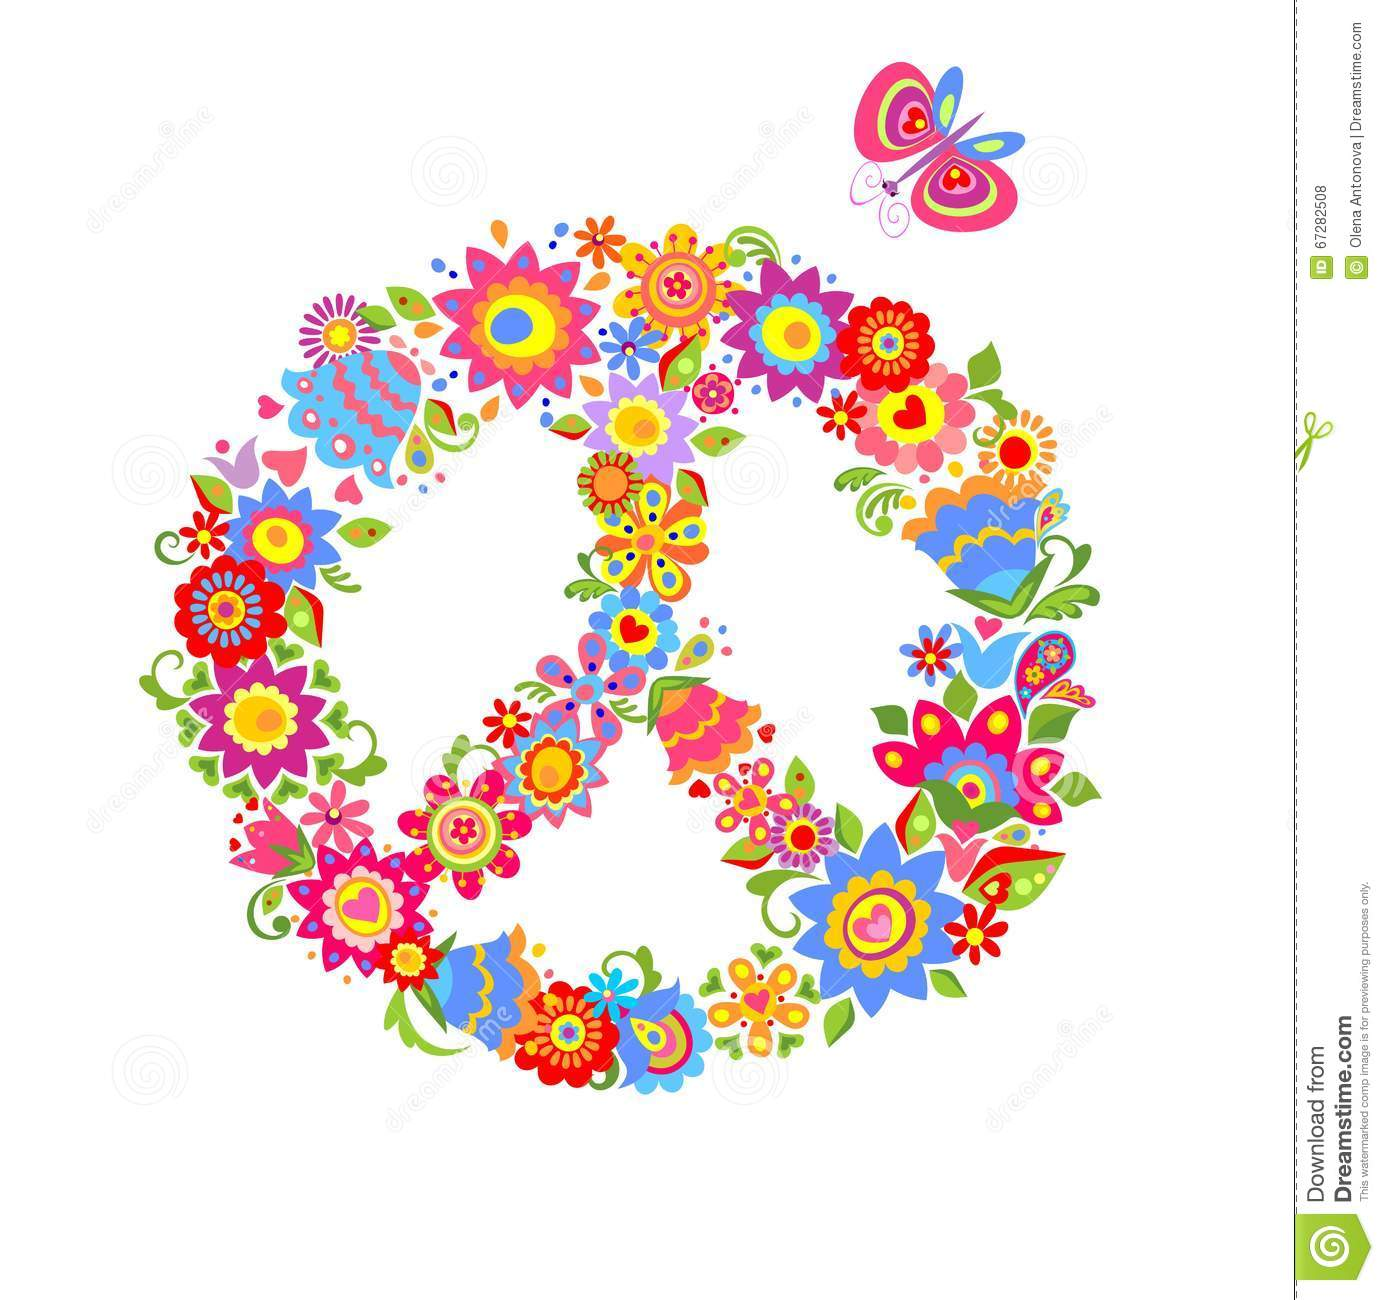 Peace flower symbol with colorful funny flowers stock vector peace flower symbol with colorful funny flowers biocorpaavc Choice Image